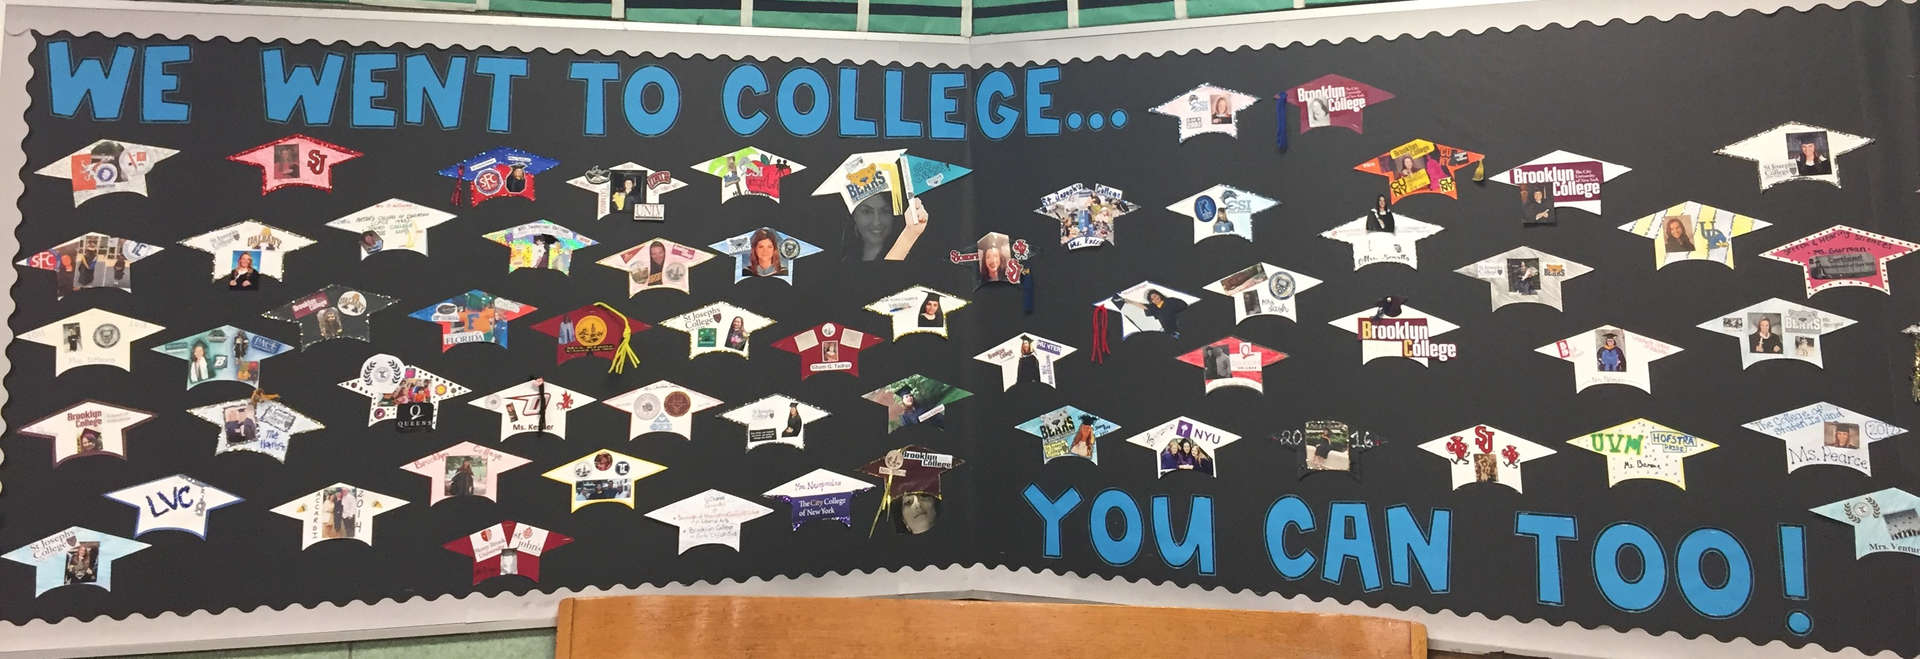 Bulletin Board in Foyer about staff going to college.